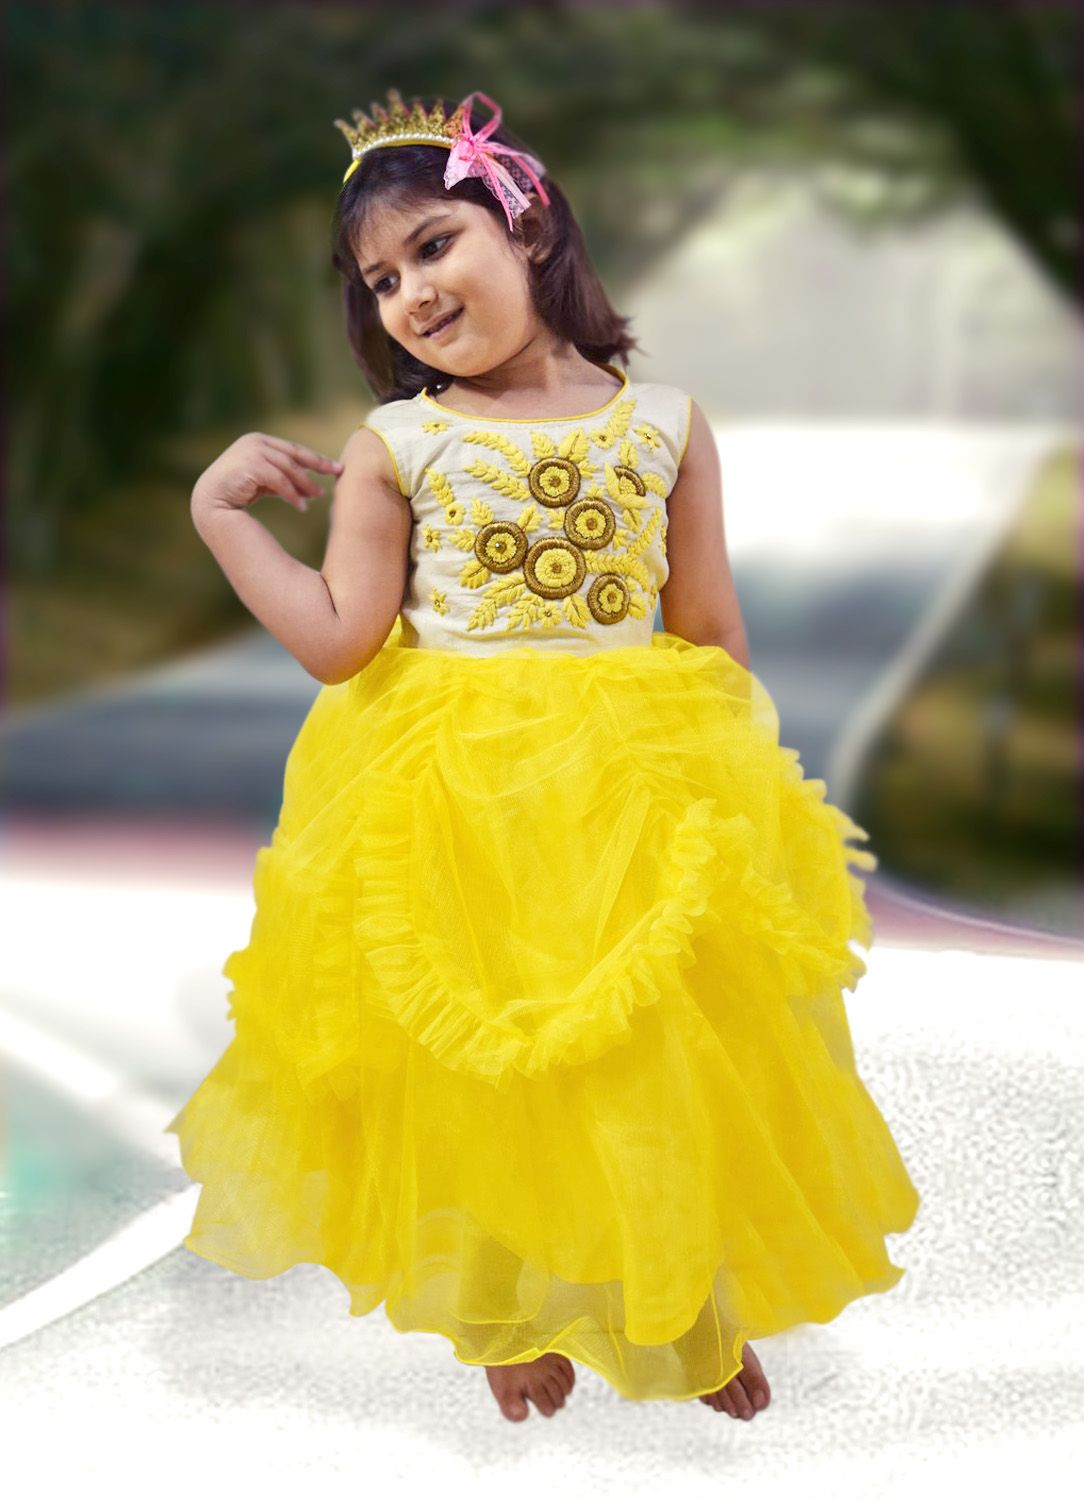 afddddd658 Buy online in India the beautiful party dress for your young baby girl.  This attire comes with sleeveless white bodice with floral embroidery.